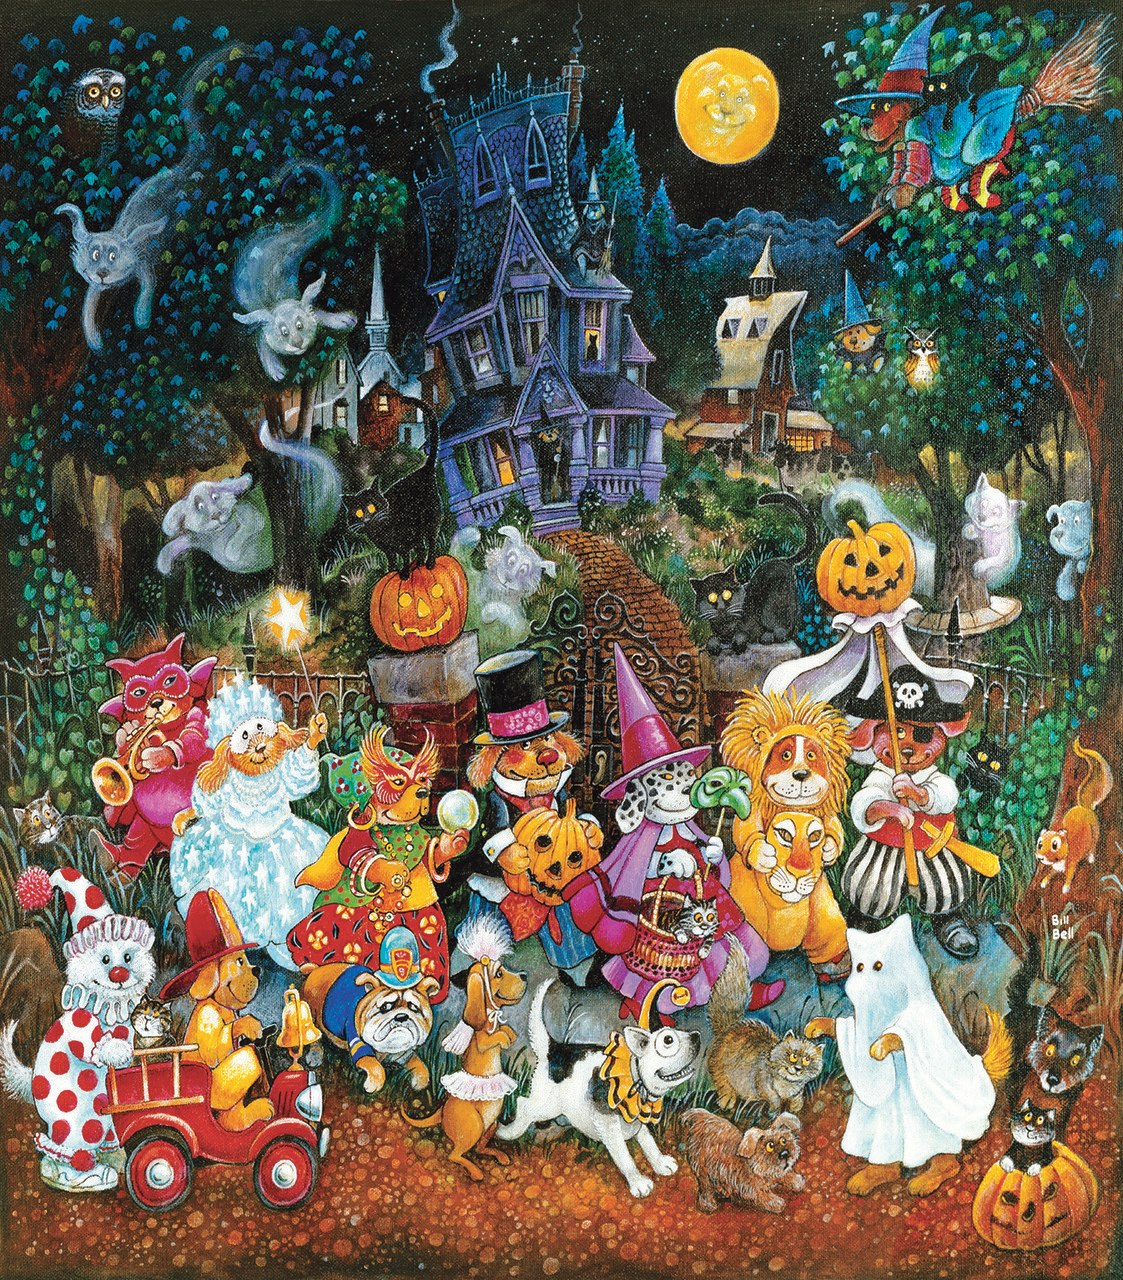 Trick or Treat Dogs - 300pc Jigsaw Puzzle by Sunsout  			  					NEW